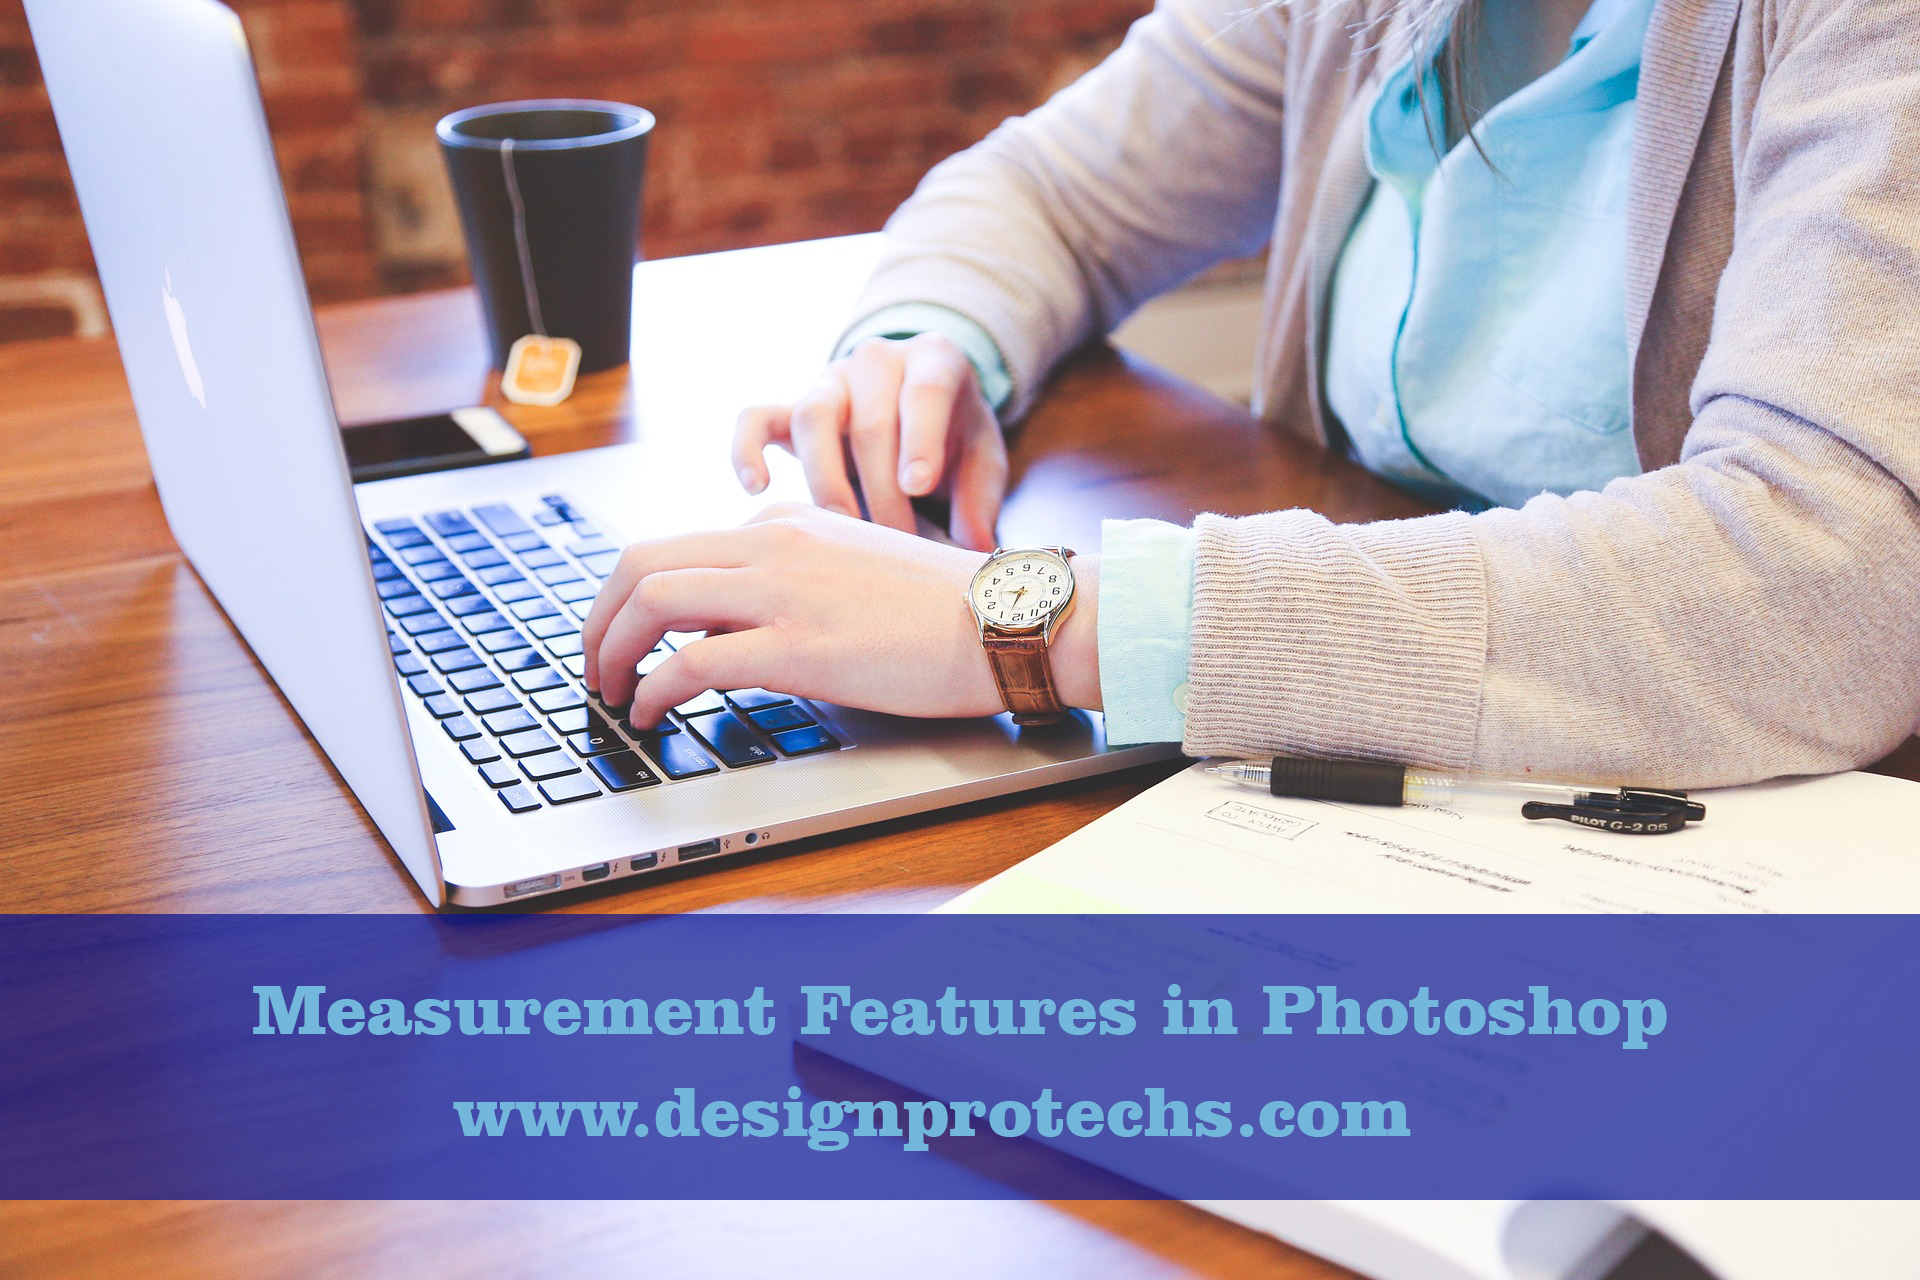 Measurement Features in Photoshop